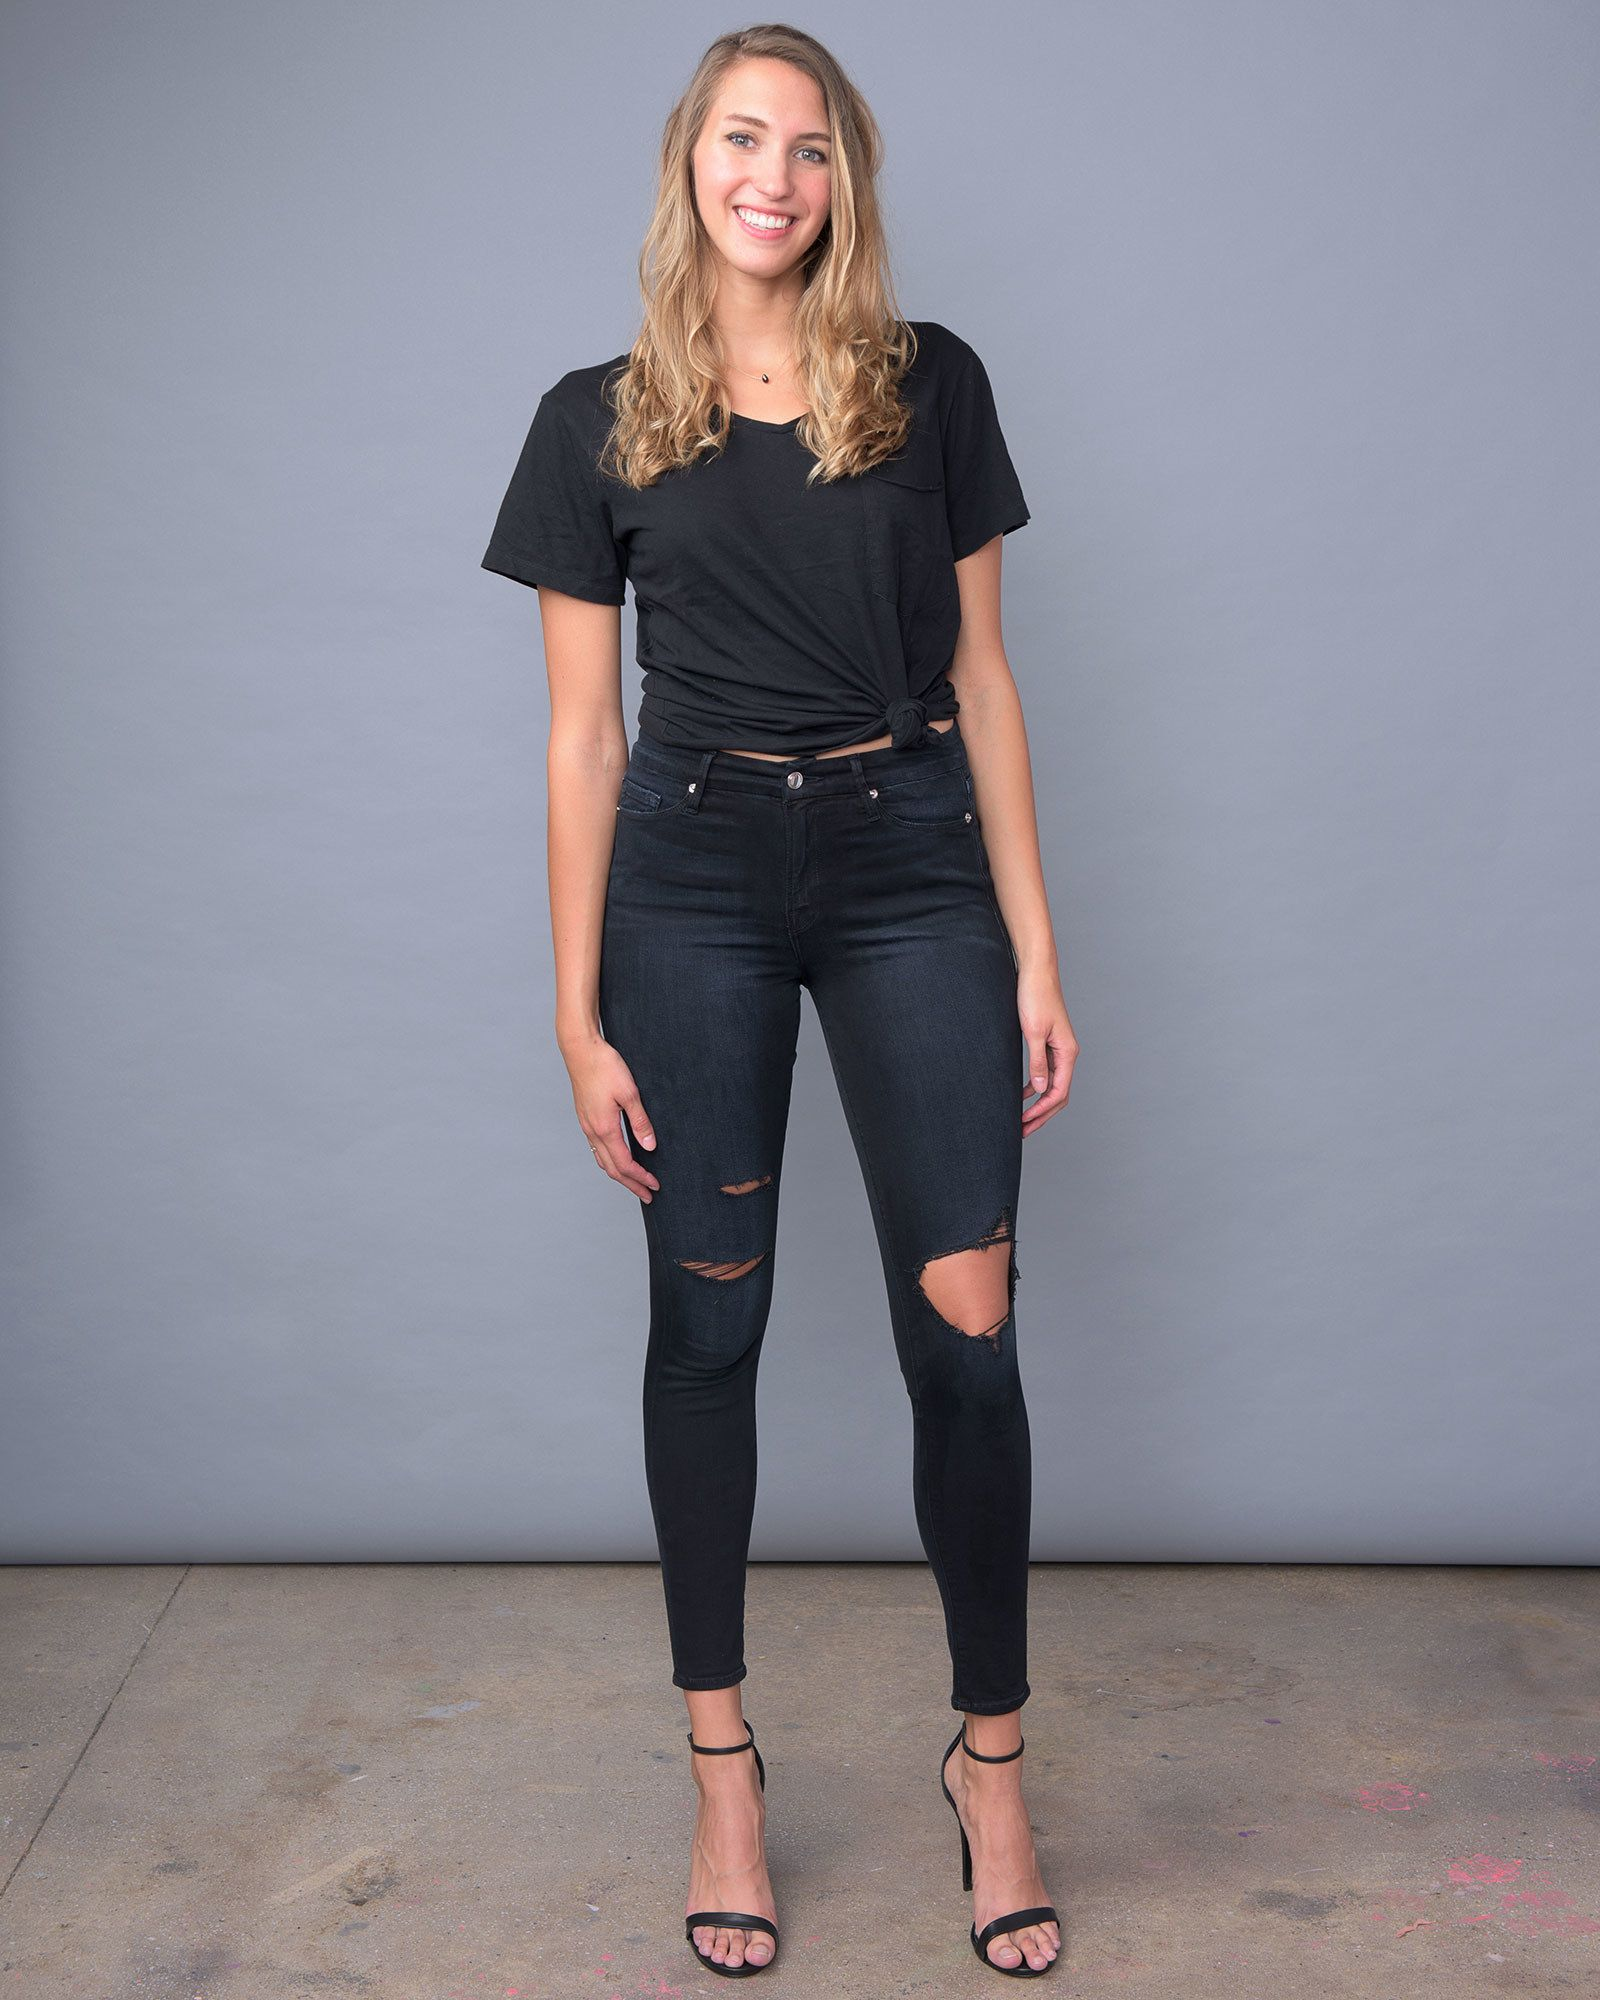 dd86a0ee80c We Tried Khloe Kardashian s Body-Inclusive Jeans And Here s How They ...